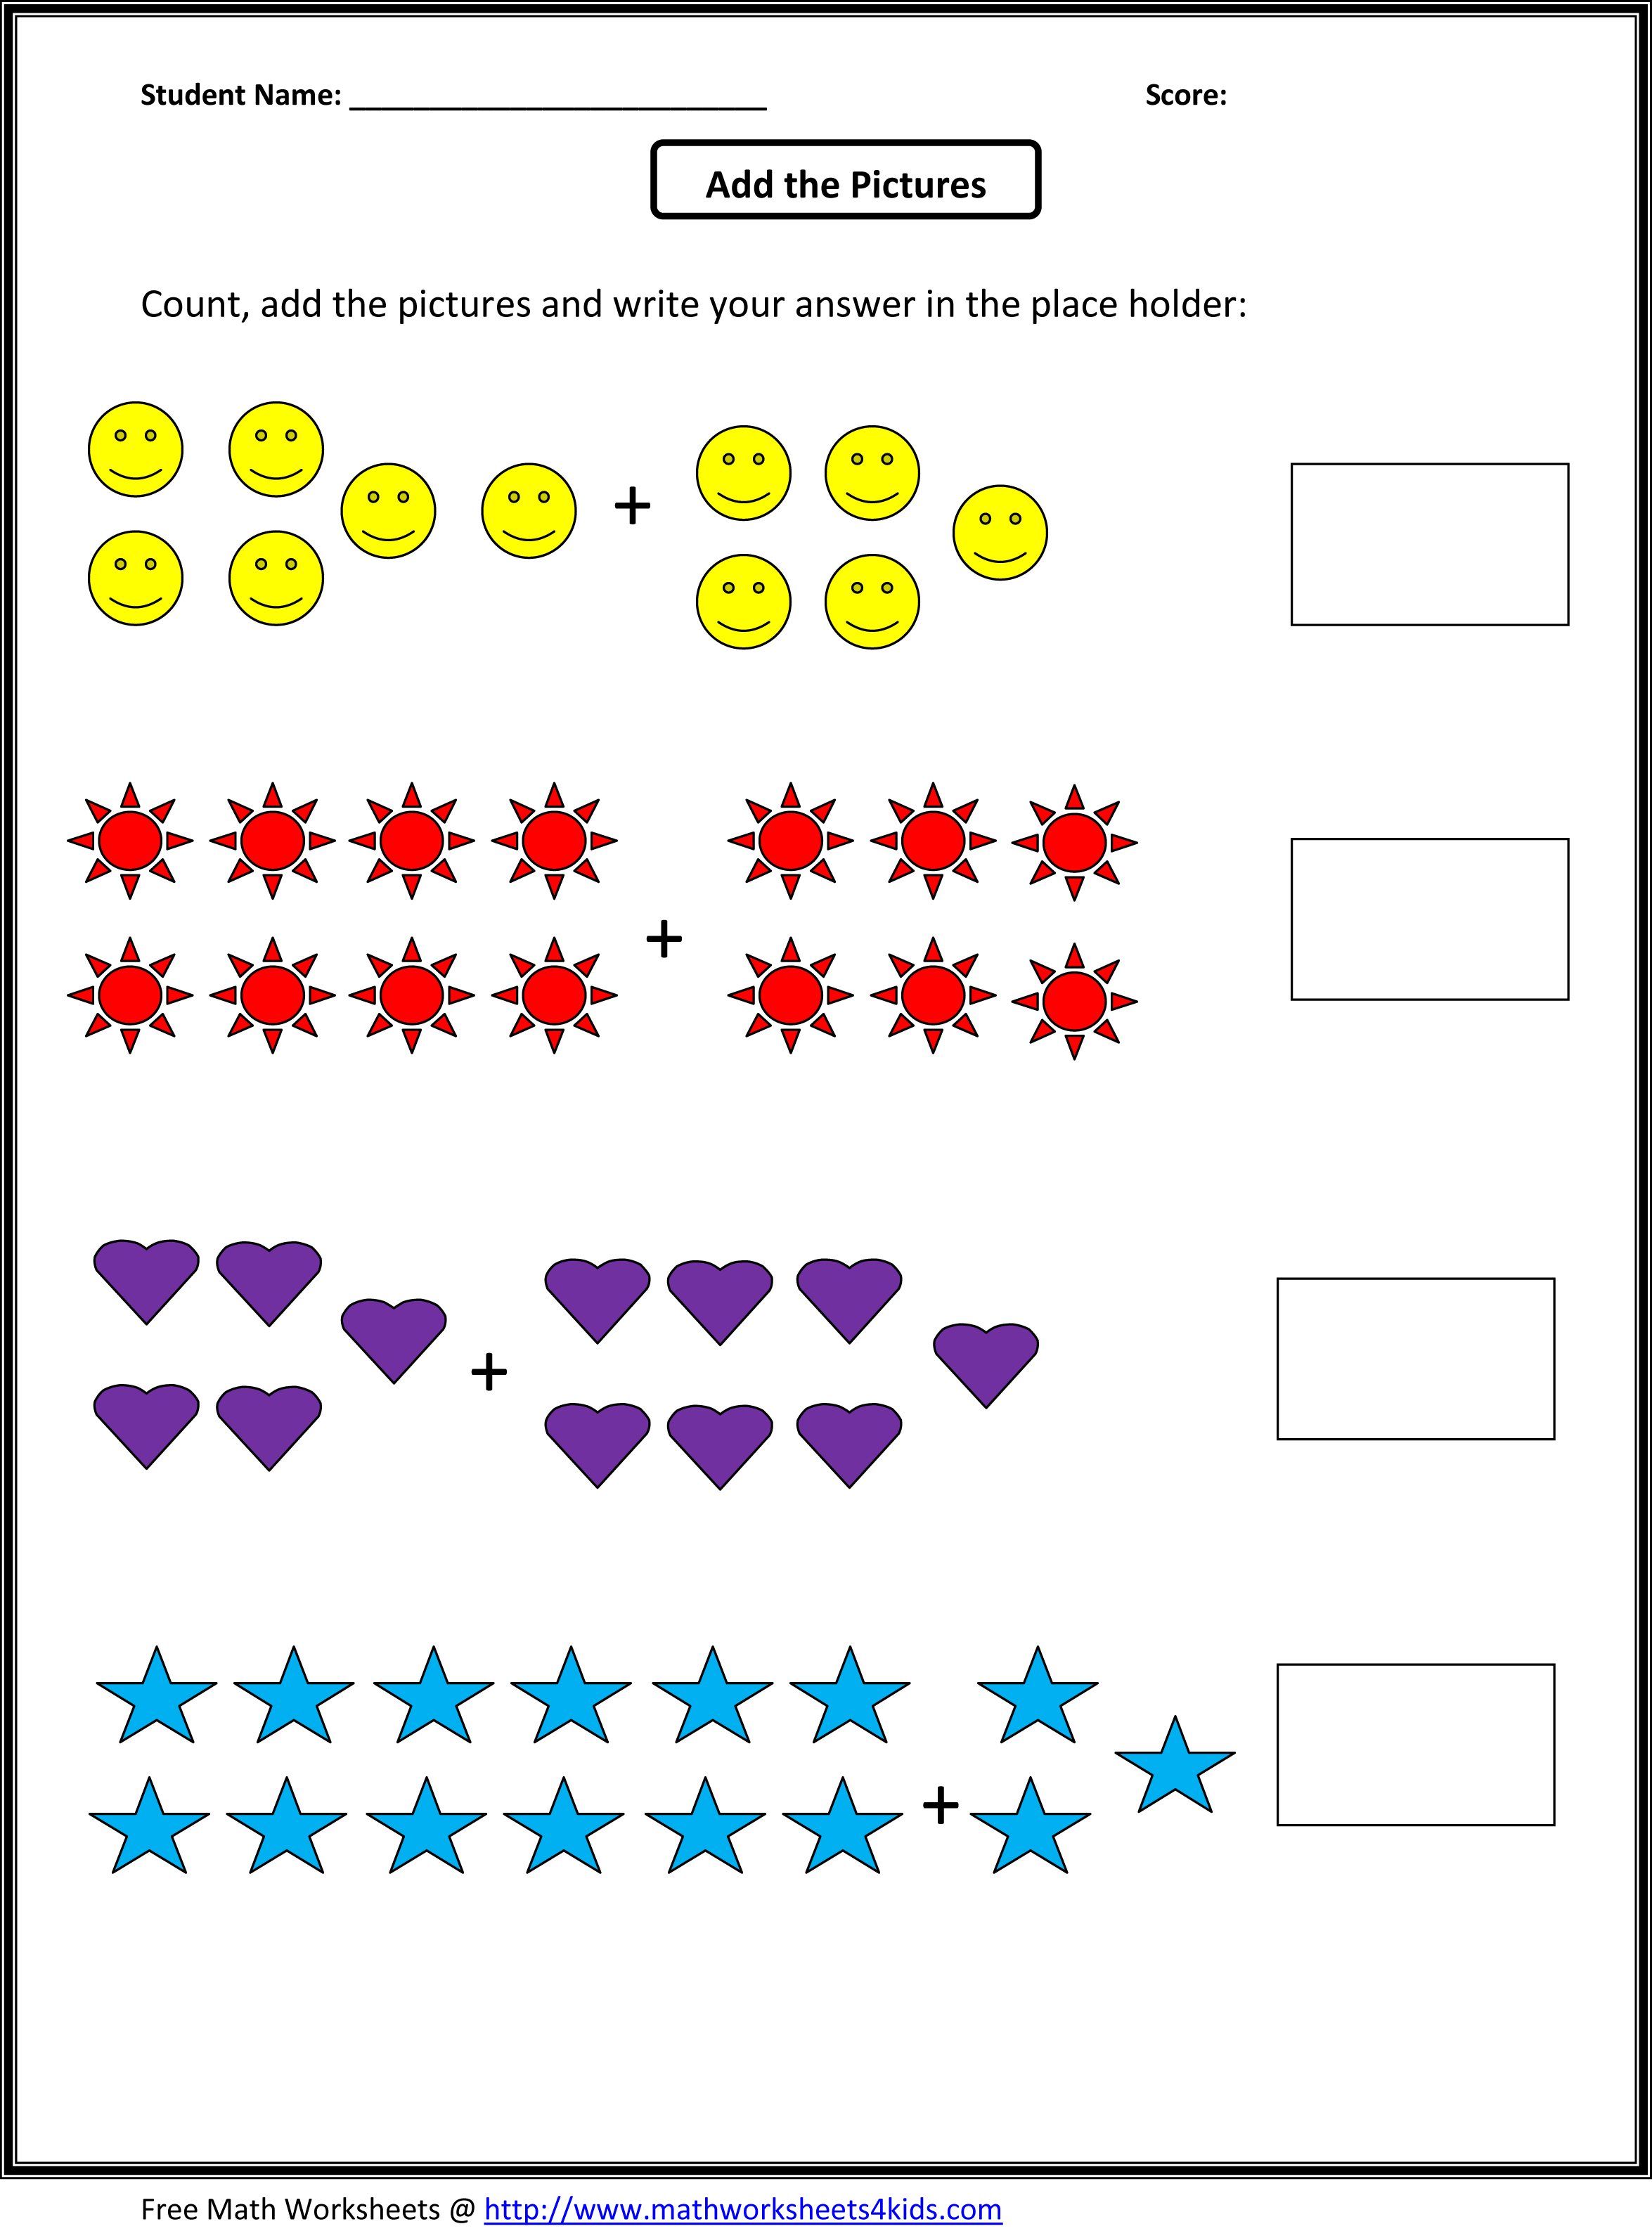 Weirdmailus  Unique Grade  Maths Worksheet  Reocurent With Remarkable Math Worksheets For St Grade Free  Reocurent With Lovely Adding Two Digit Numbers Worksheets Also Capitalization Worksheets Nd Grade In Addition Animal Adaptations Worksheet And Graphing Y Mx B Worksheet As Well As Mechanical Advantage Of Simple Machines Worksheet Additionally Common Core Standards Worksheets From Reocurentcom With Weirdmailus  Remarkable Grade  Maths Worksheet  Reocurent With Lovely Math Worksheets For St Grade Free  Reocurent And Unique Adding Two Digit Numbers Worksheets Also Capitalization Worksheets Nd Grade In Addition Animal Adaptations Worksheet From Reocurentcom